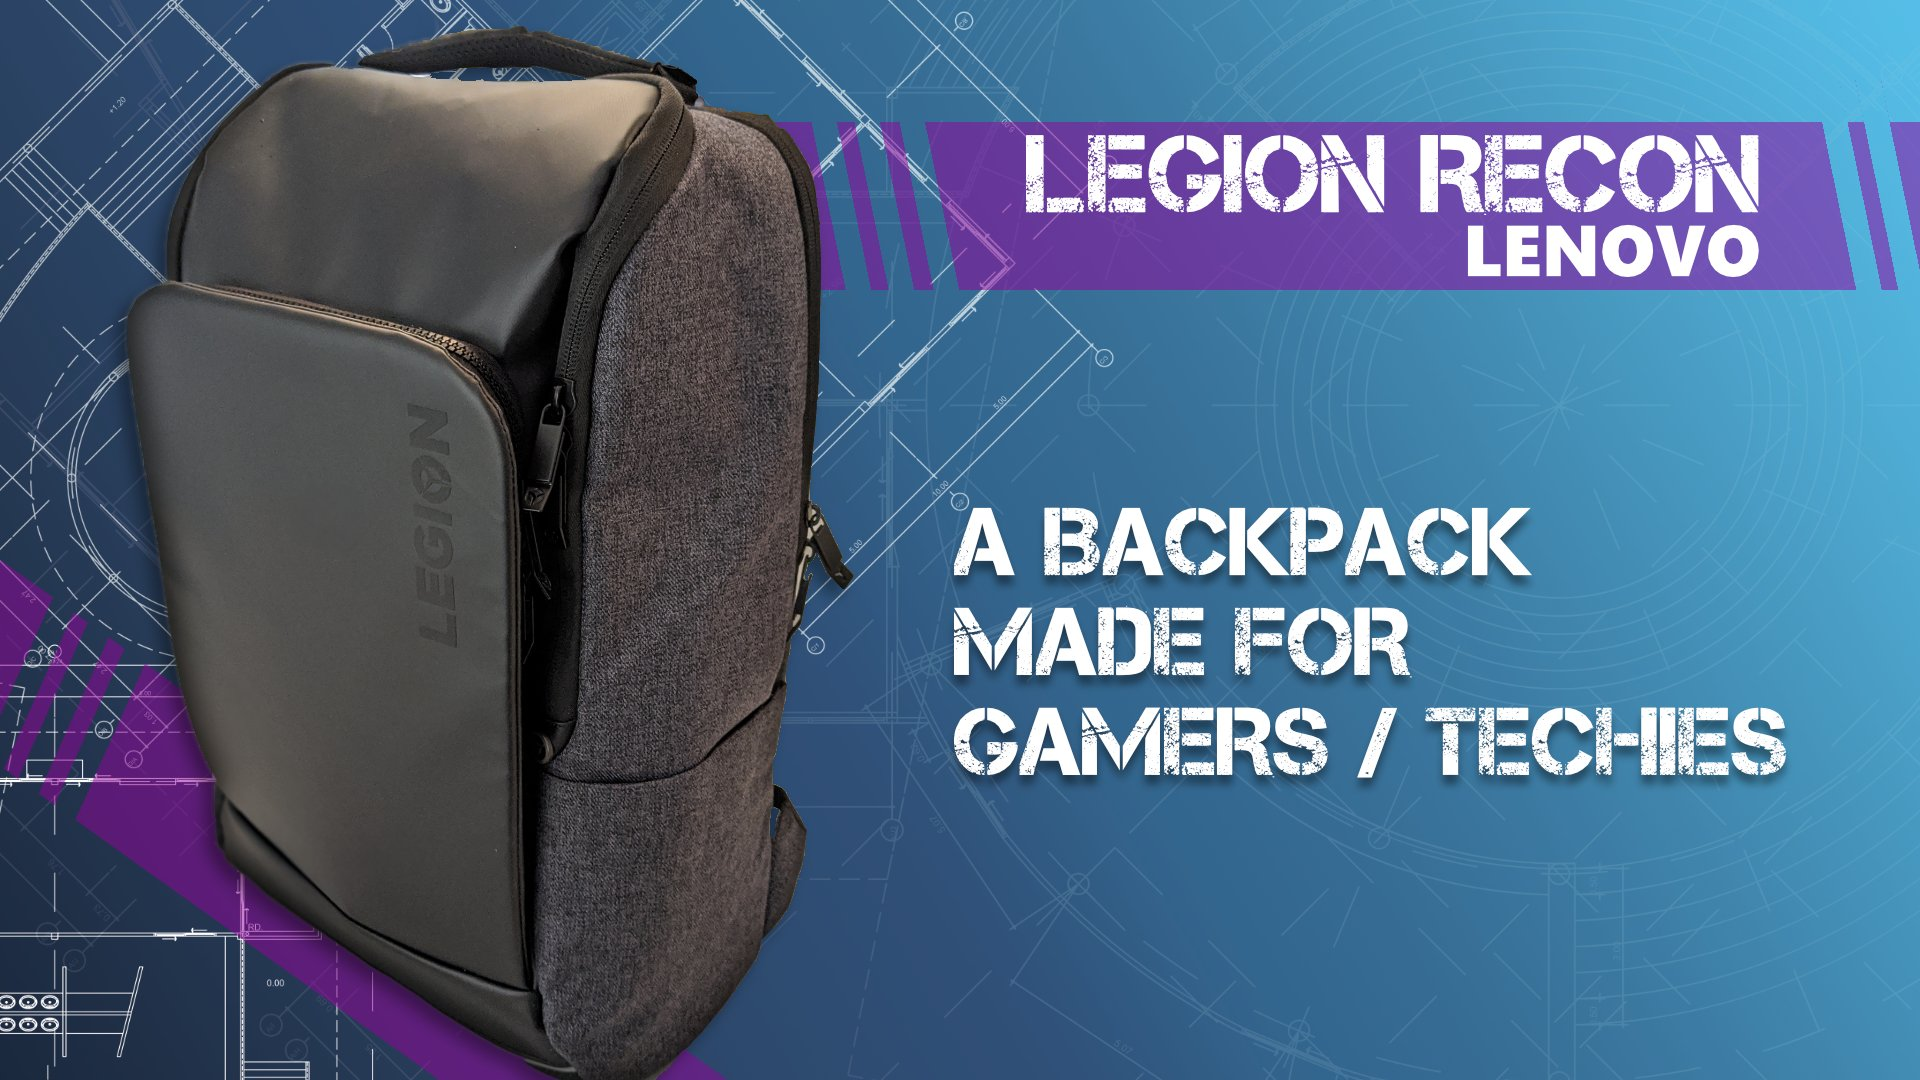 Legion Recon Lenovo Backpack Gamers Techies review